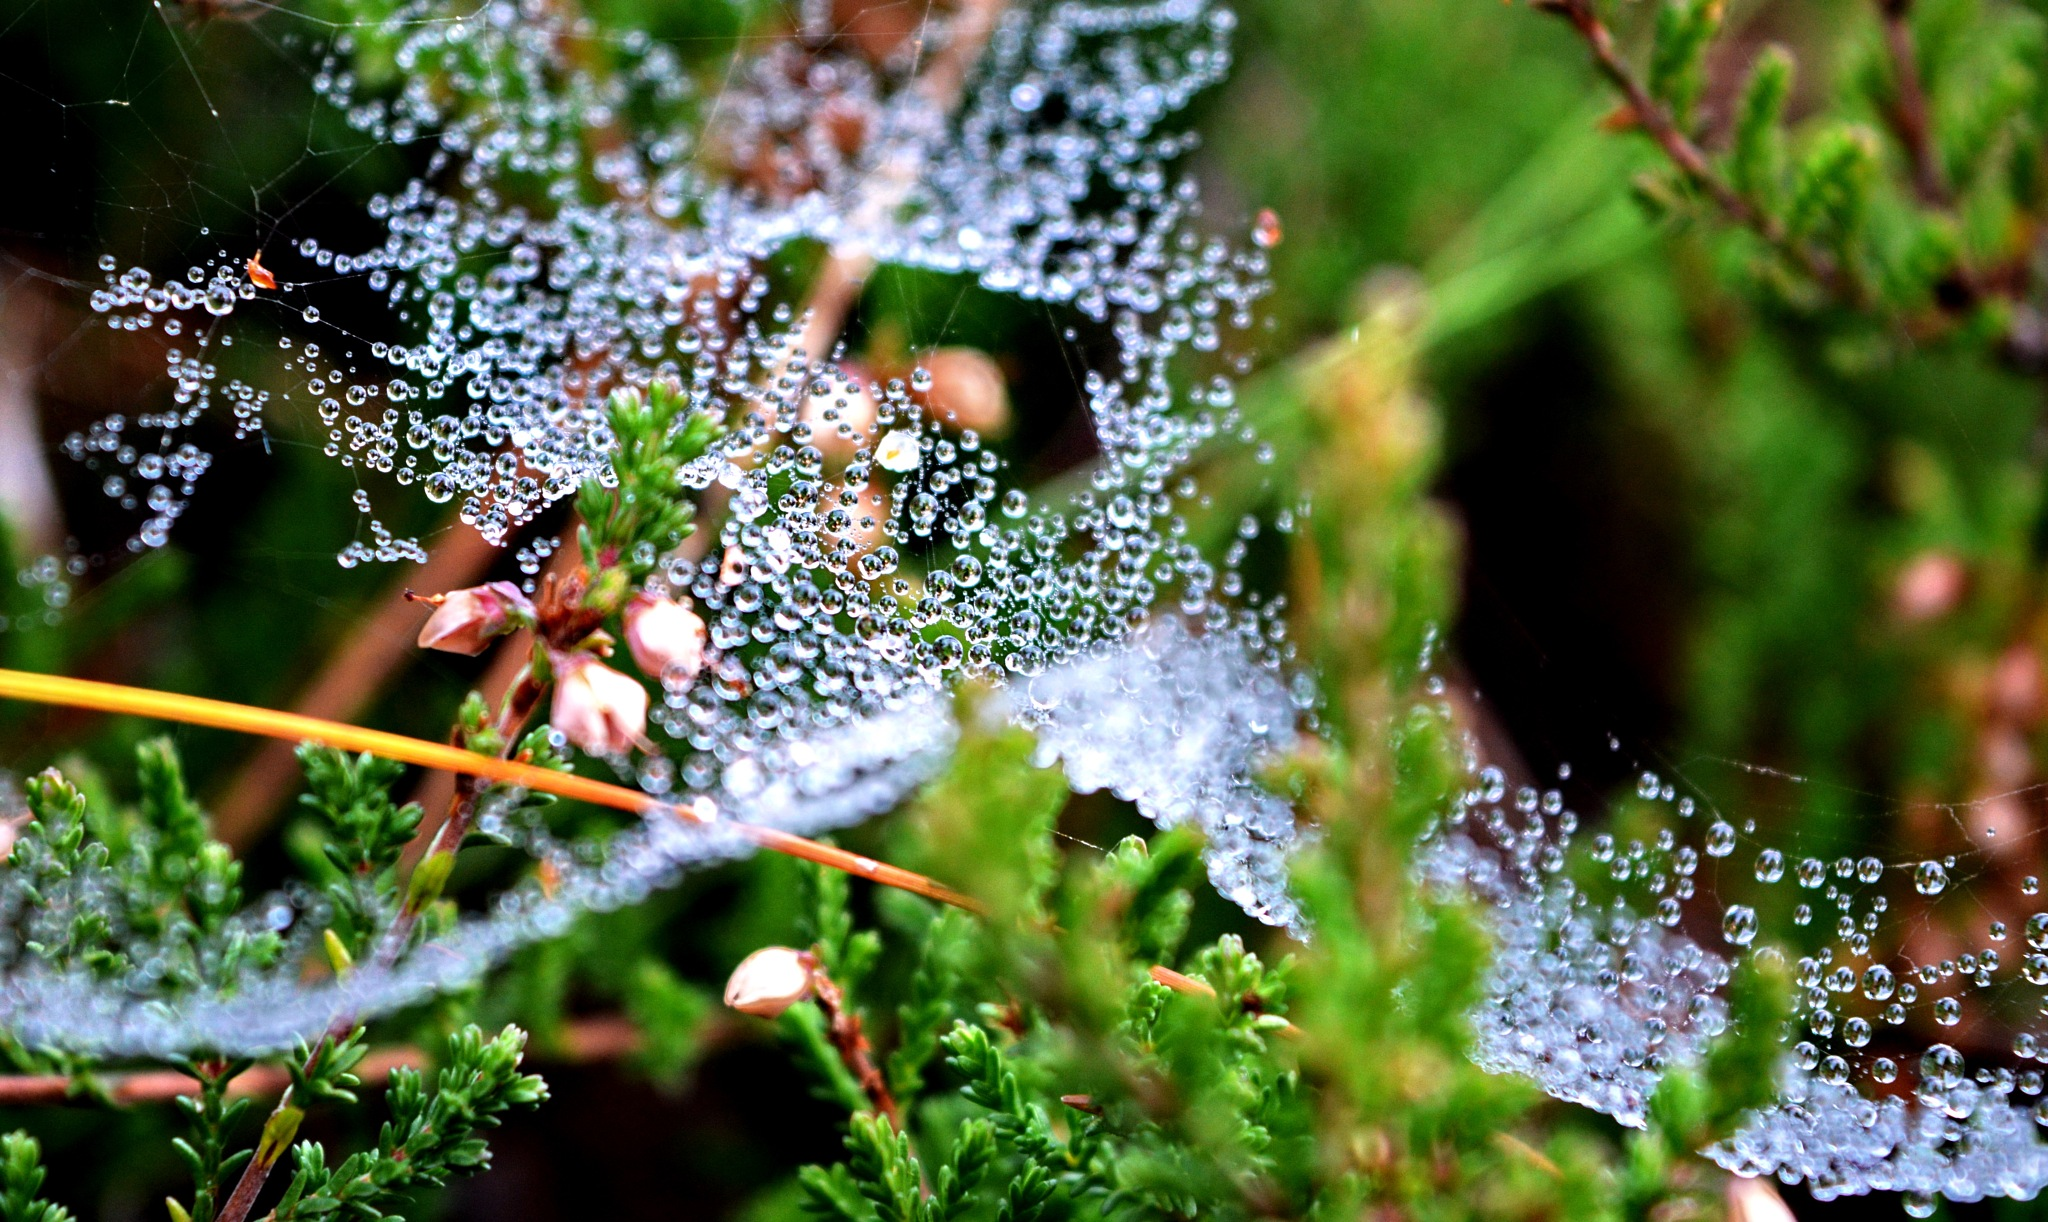 Dew drops by AgitaPudule